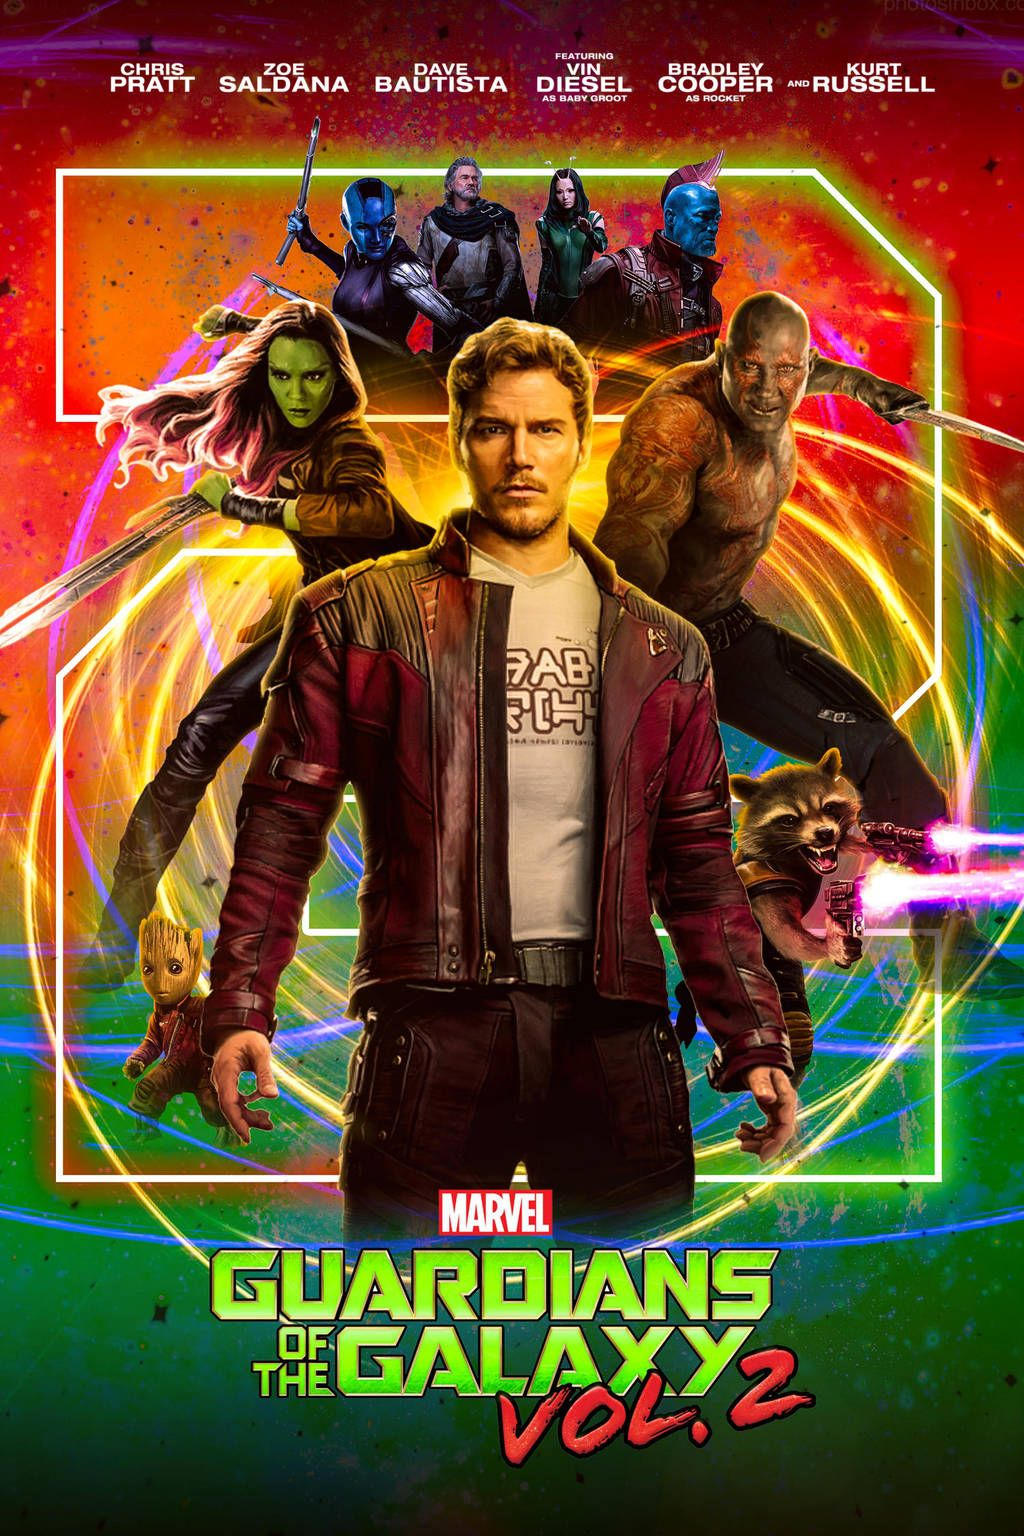 Guardians of the Galaxy Vol. 2 (Poster) by shathit | Guardians of ...